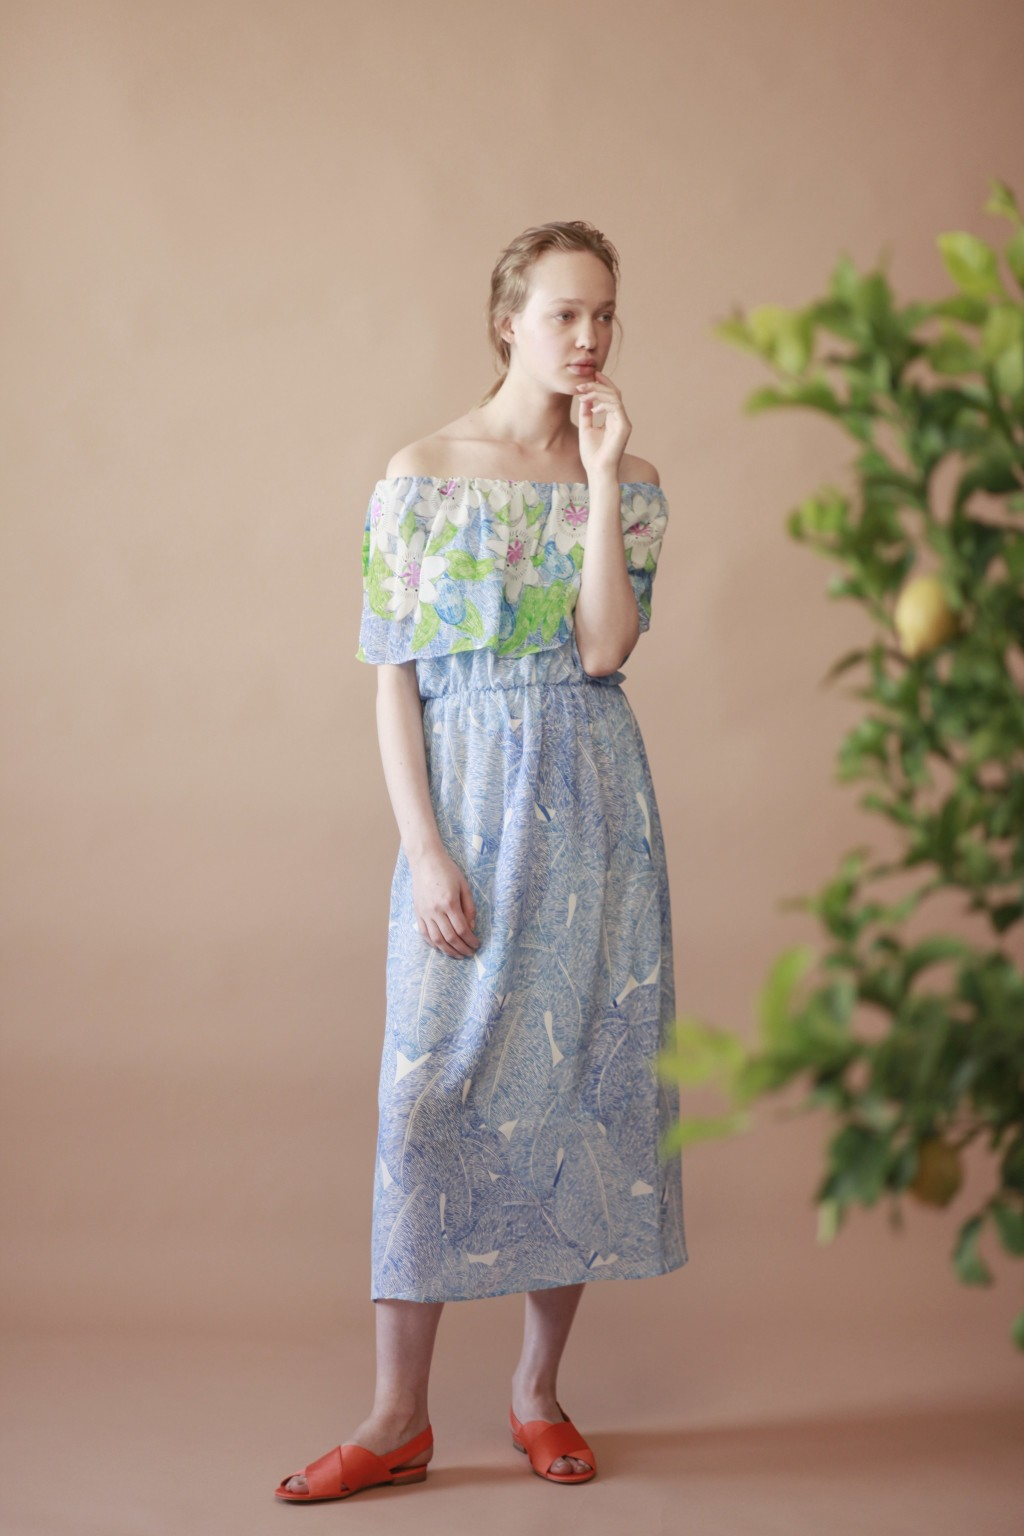 Dina Khalifé Welcomes Spring with a Bright, Refreshing Collection